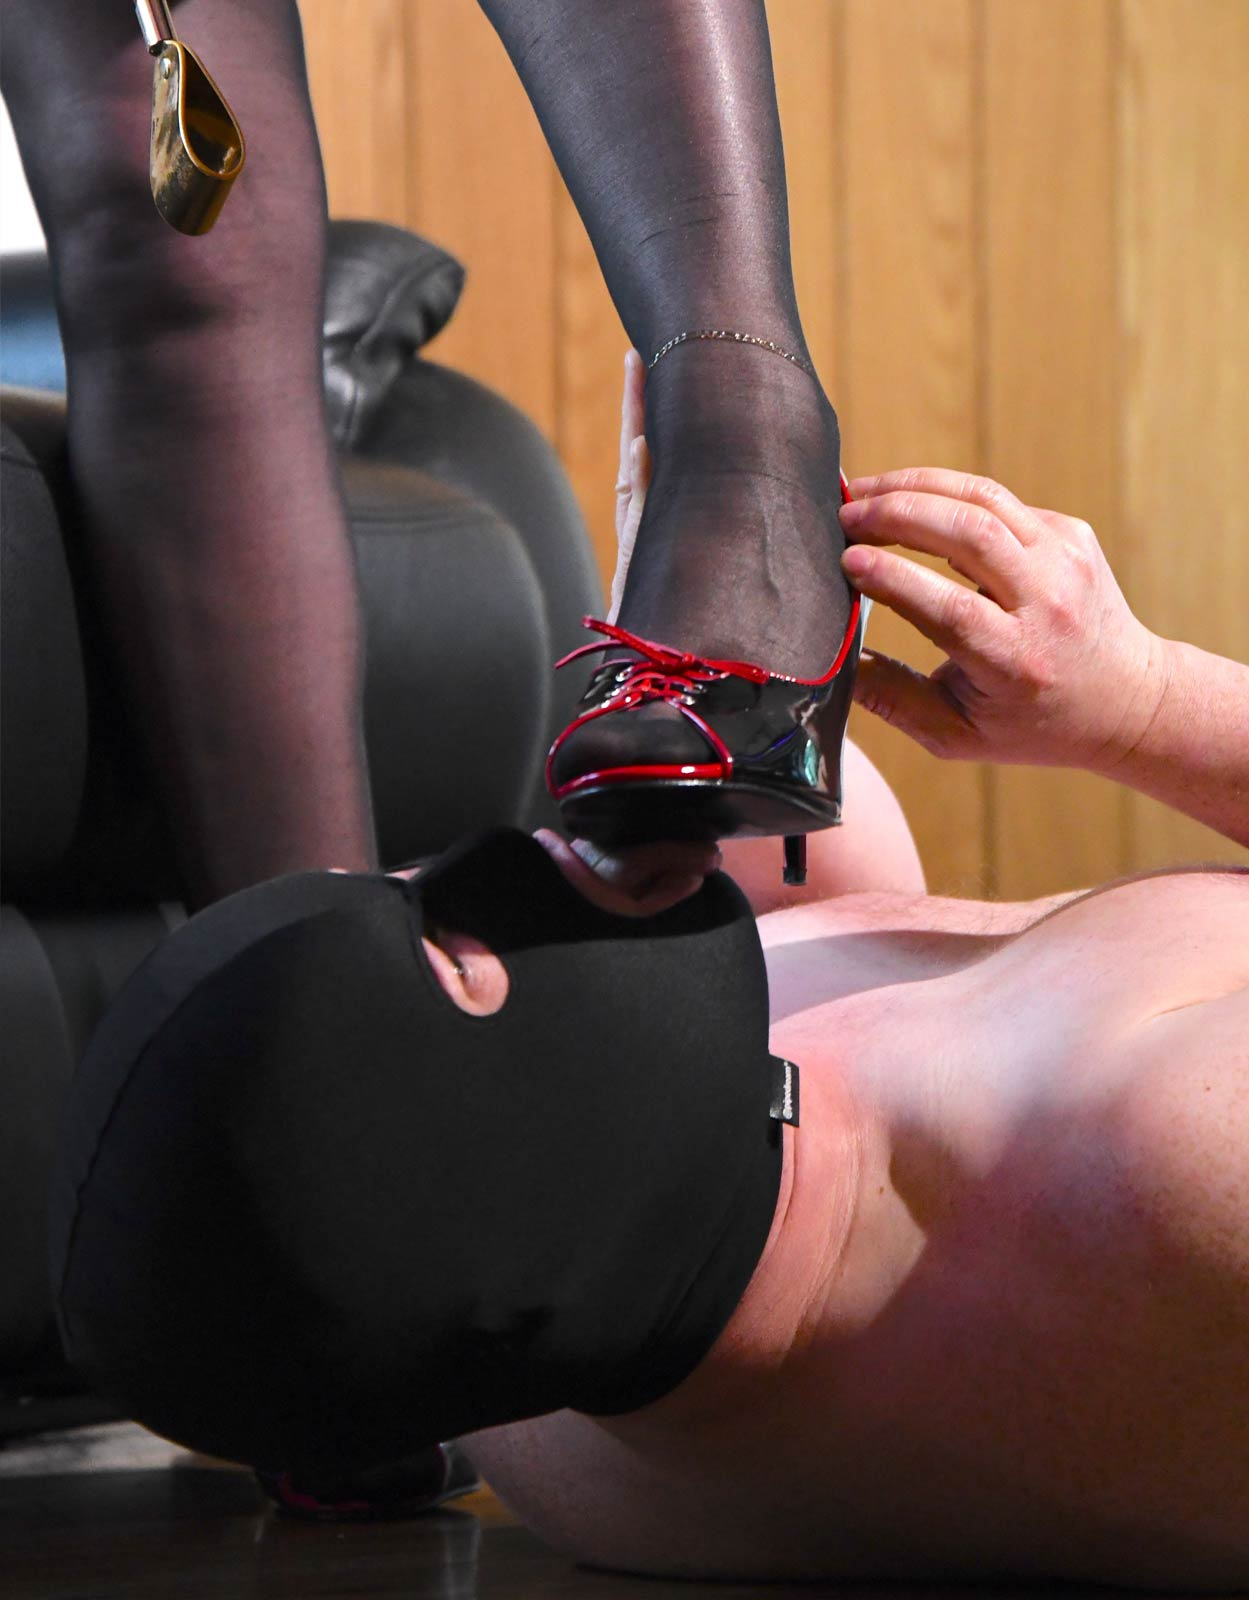 Worship Mistress Carly's Feet And Shoes